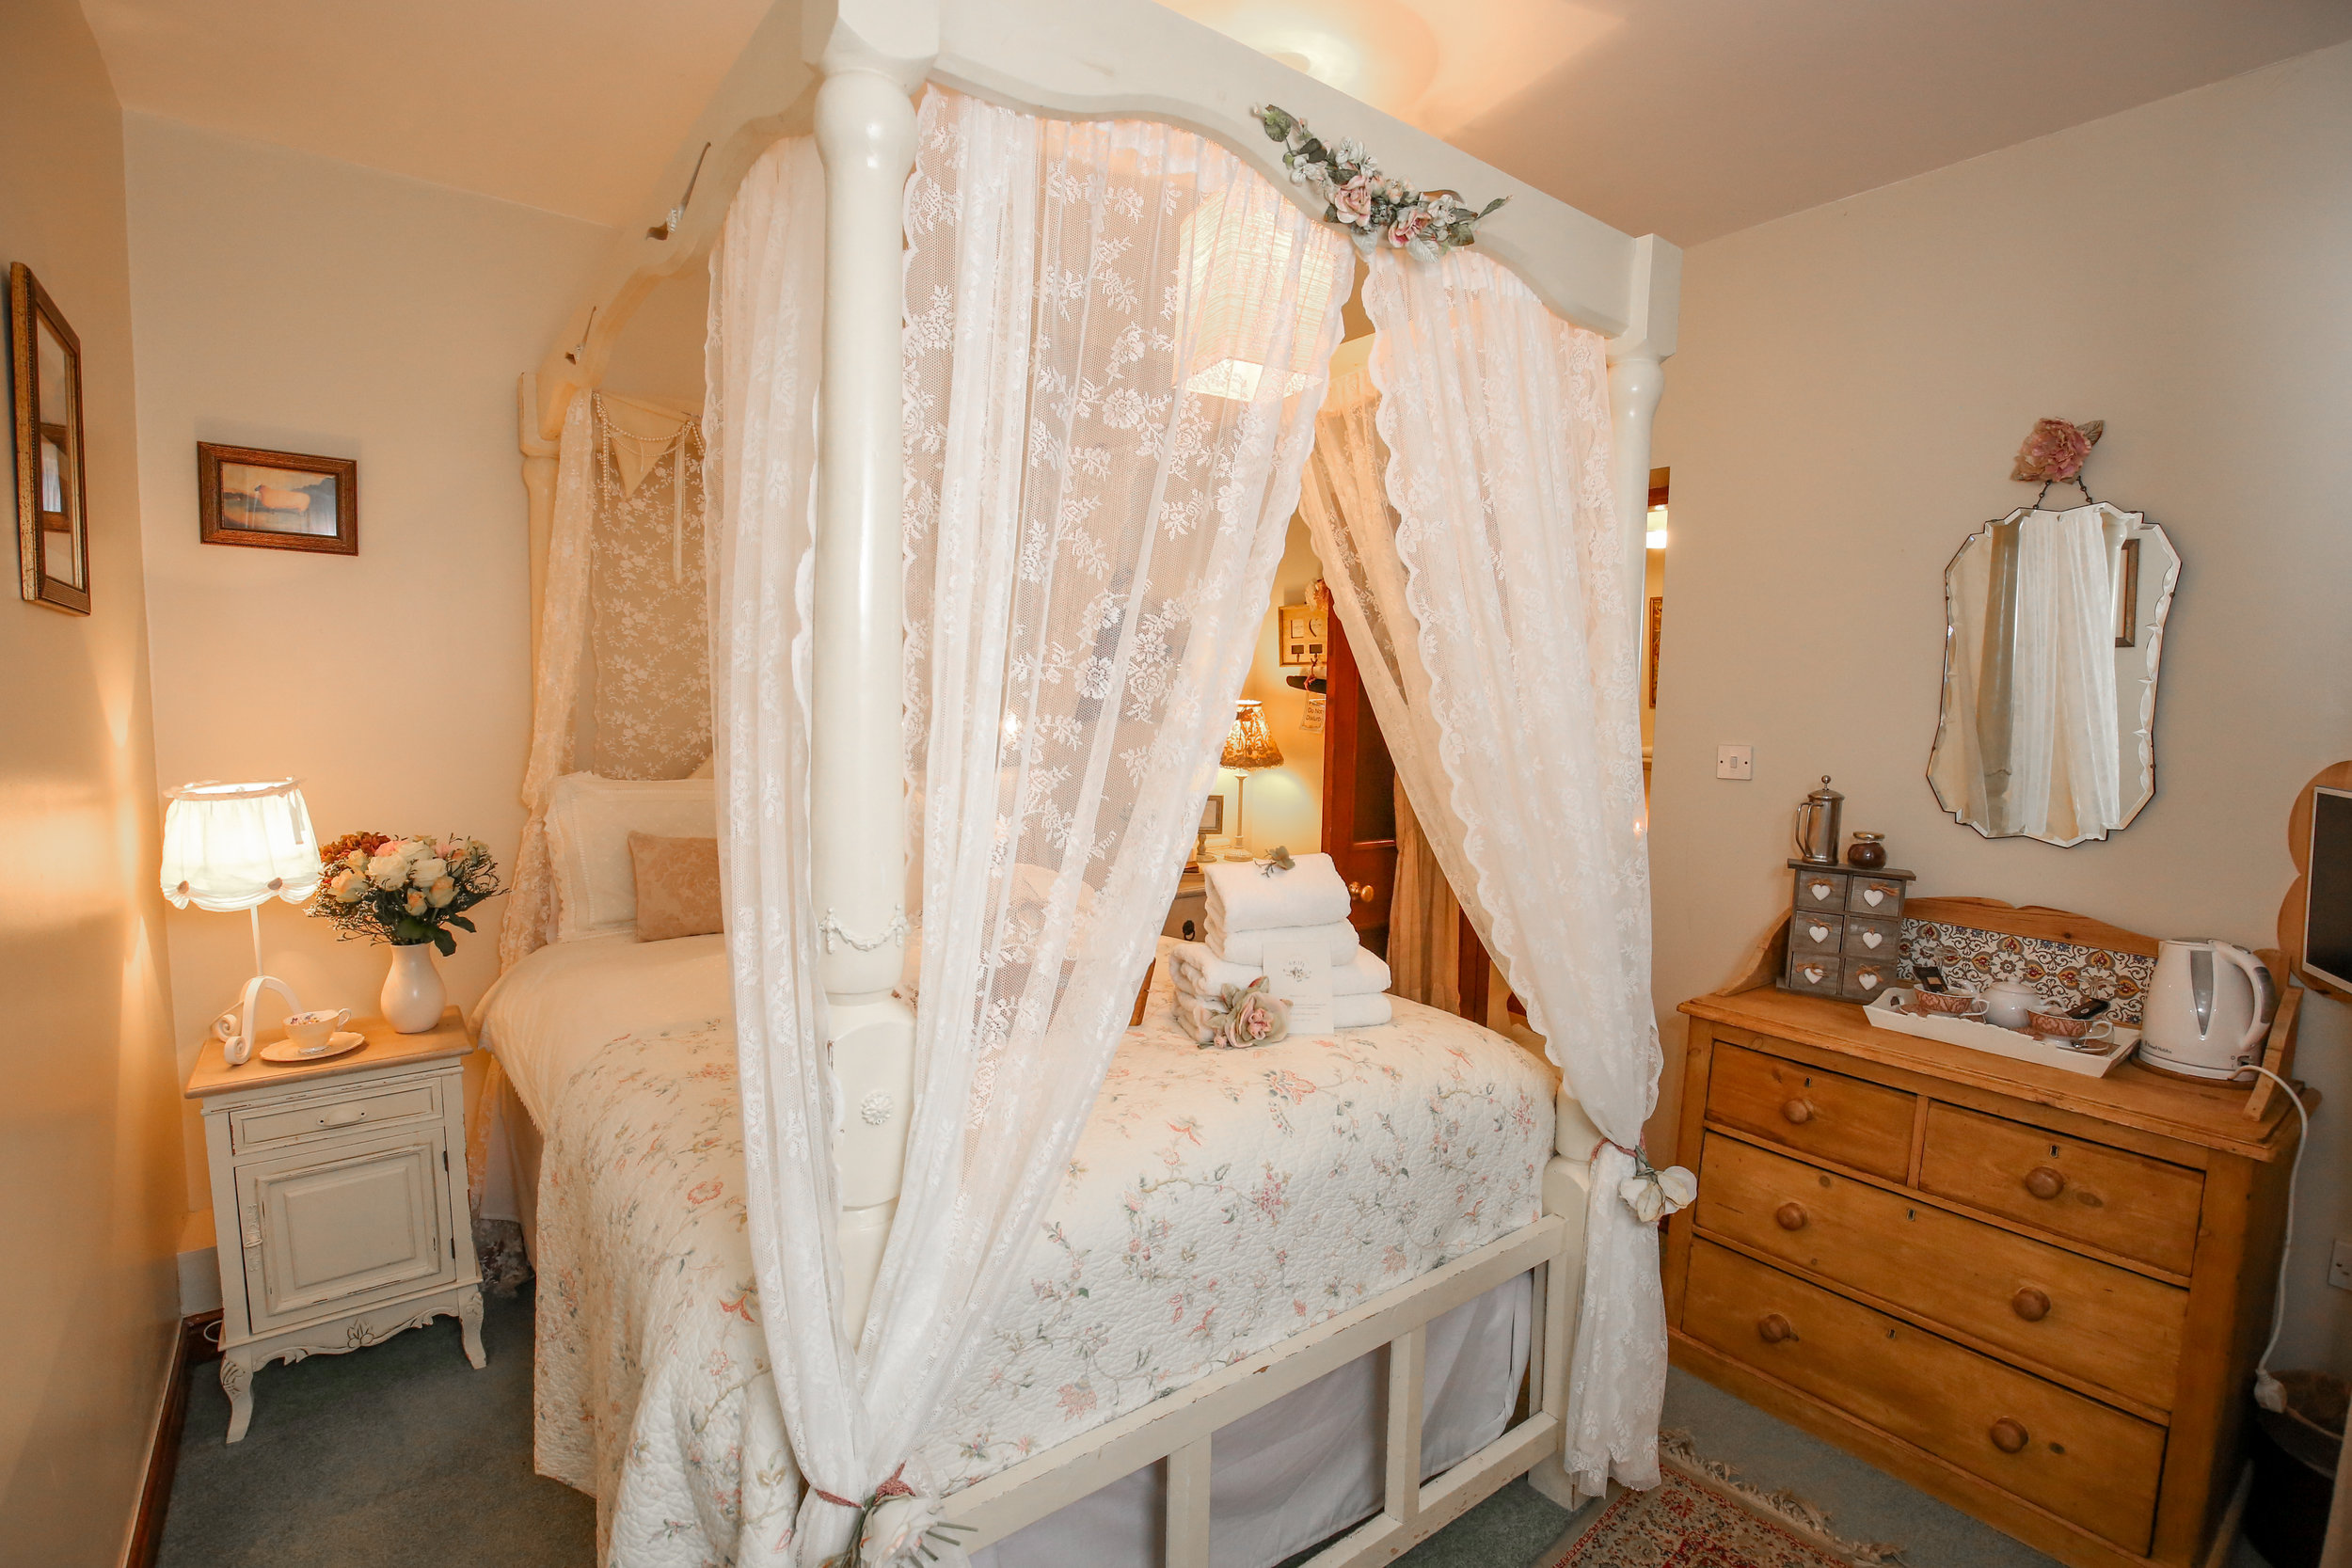 Room 2 - Room 2 is a warm and welcoming accessible double on the ground floor. Romantic lace drapes envelope the white four poster bed, and it features an en-suite shower. It's decked front is shared with Room 1 and provides the perfect spot to enjoy our historic courtyard garden.